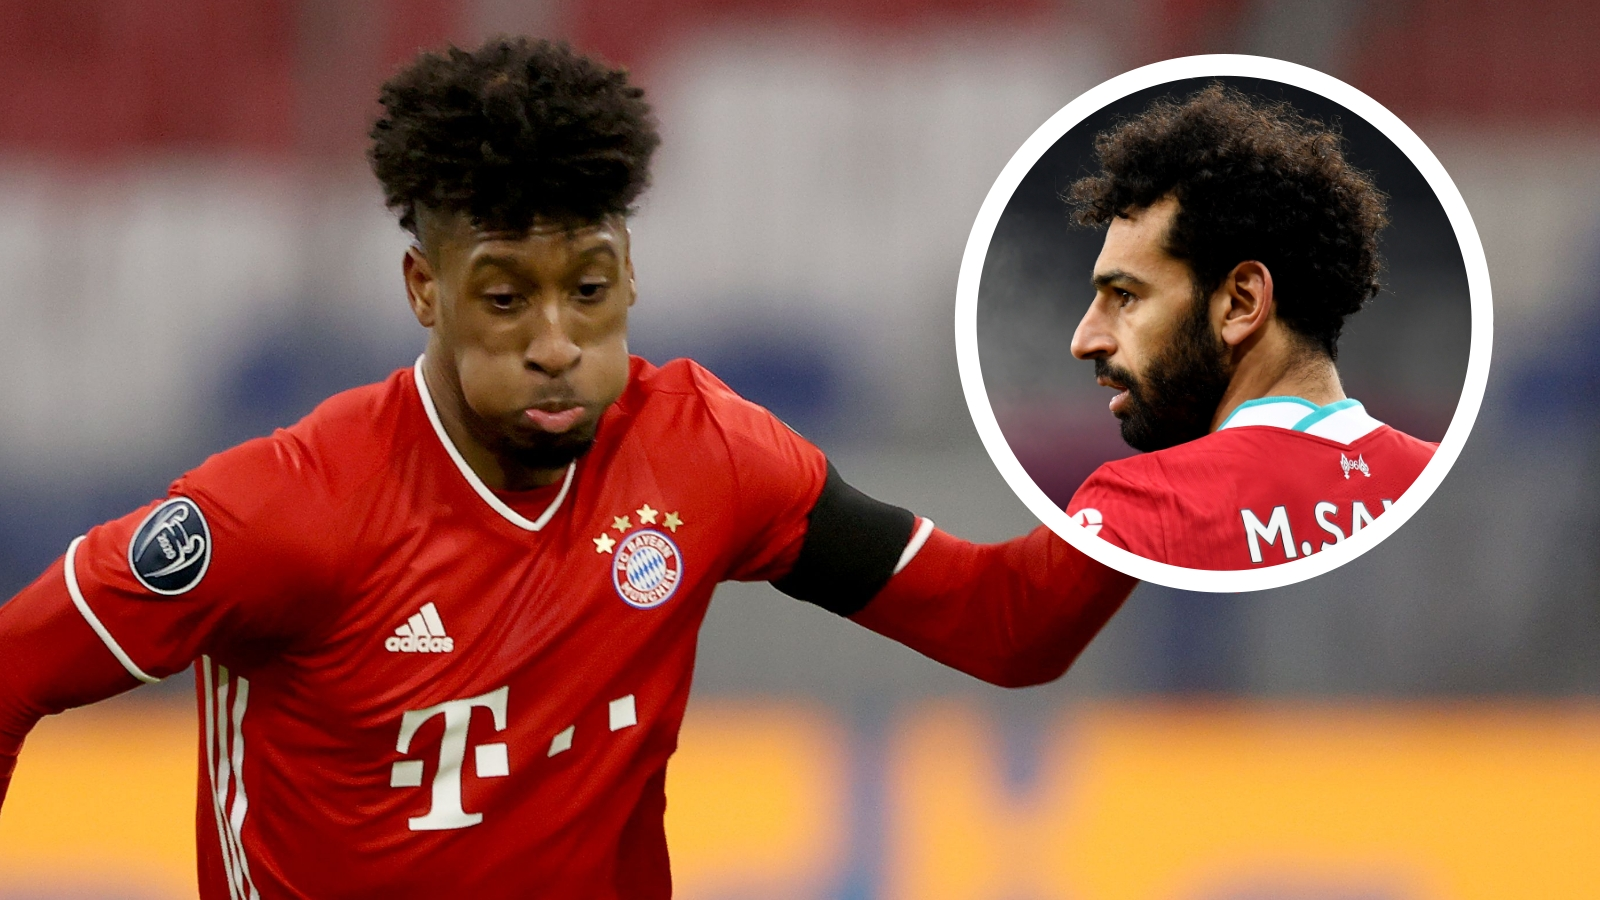 Coman billed as potential Salah successor as Hamann looks at options for Liverpool